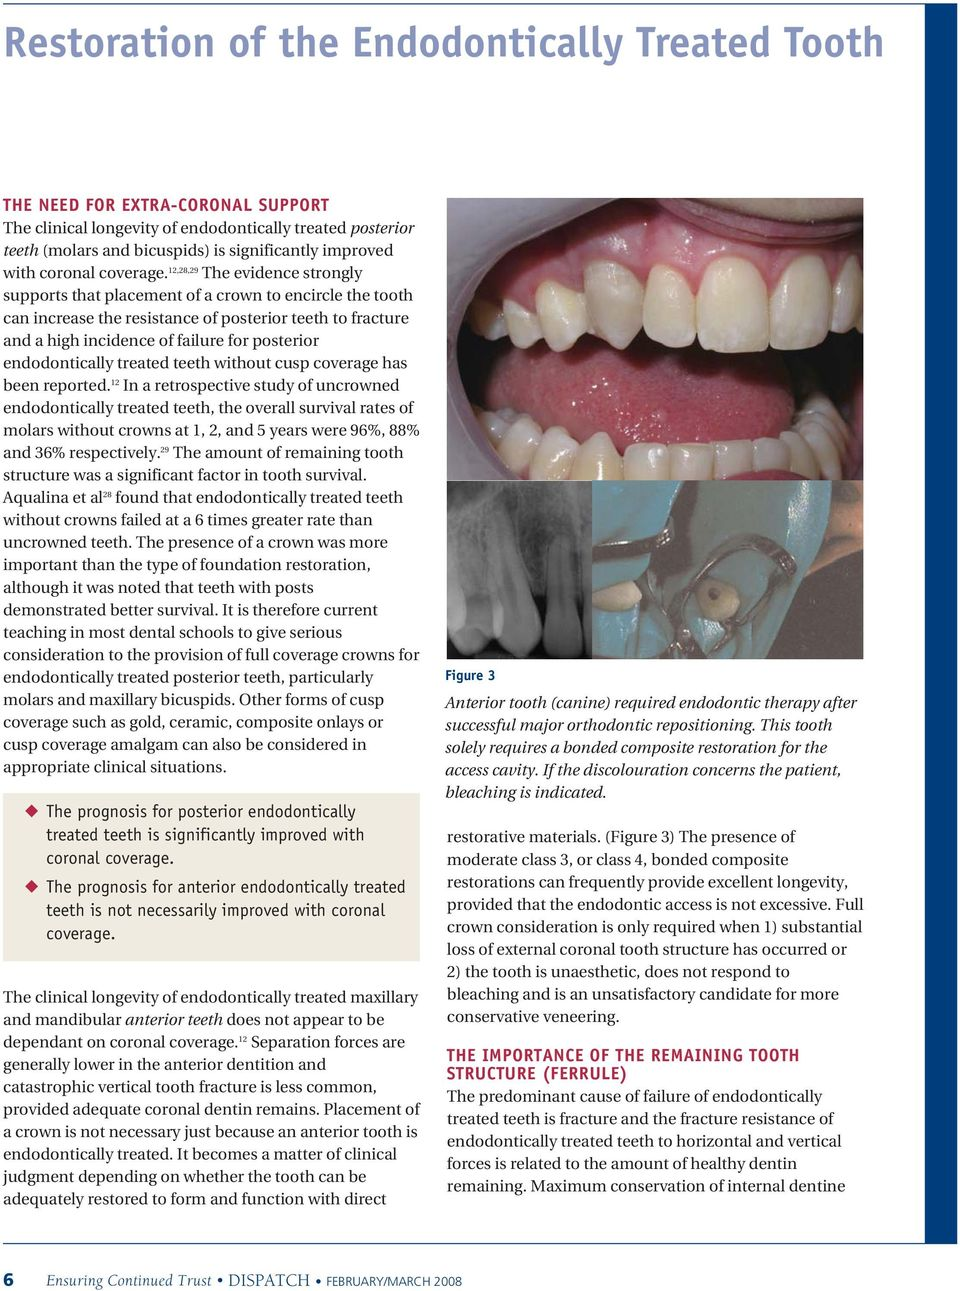 12,28,29 The evidence strongly supports that placement of a crown to encircle the tooth can increase the resistance of posterior teeth to fracture and a high incidence of failure for posterior